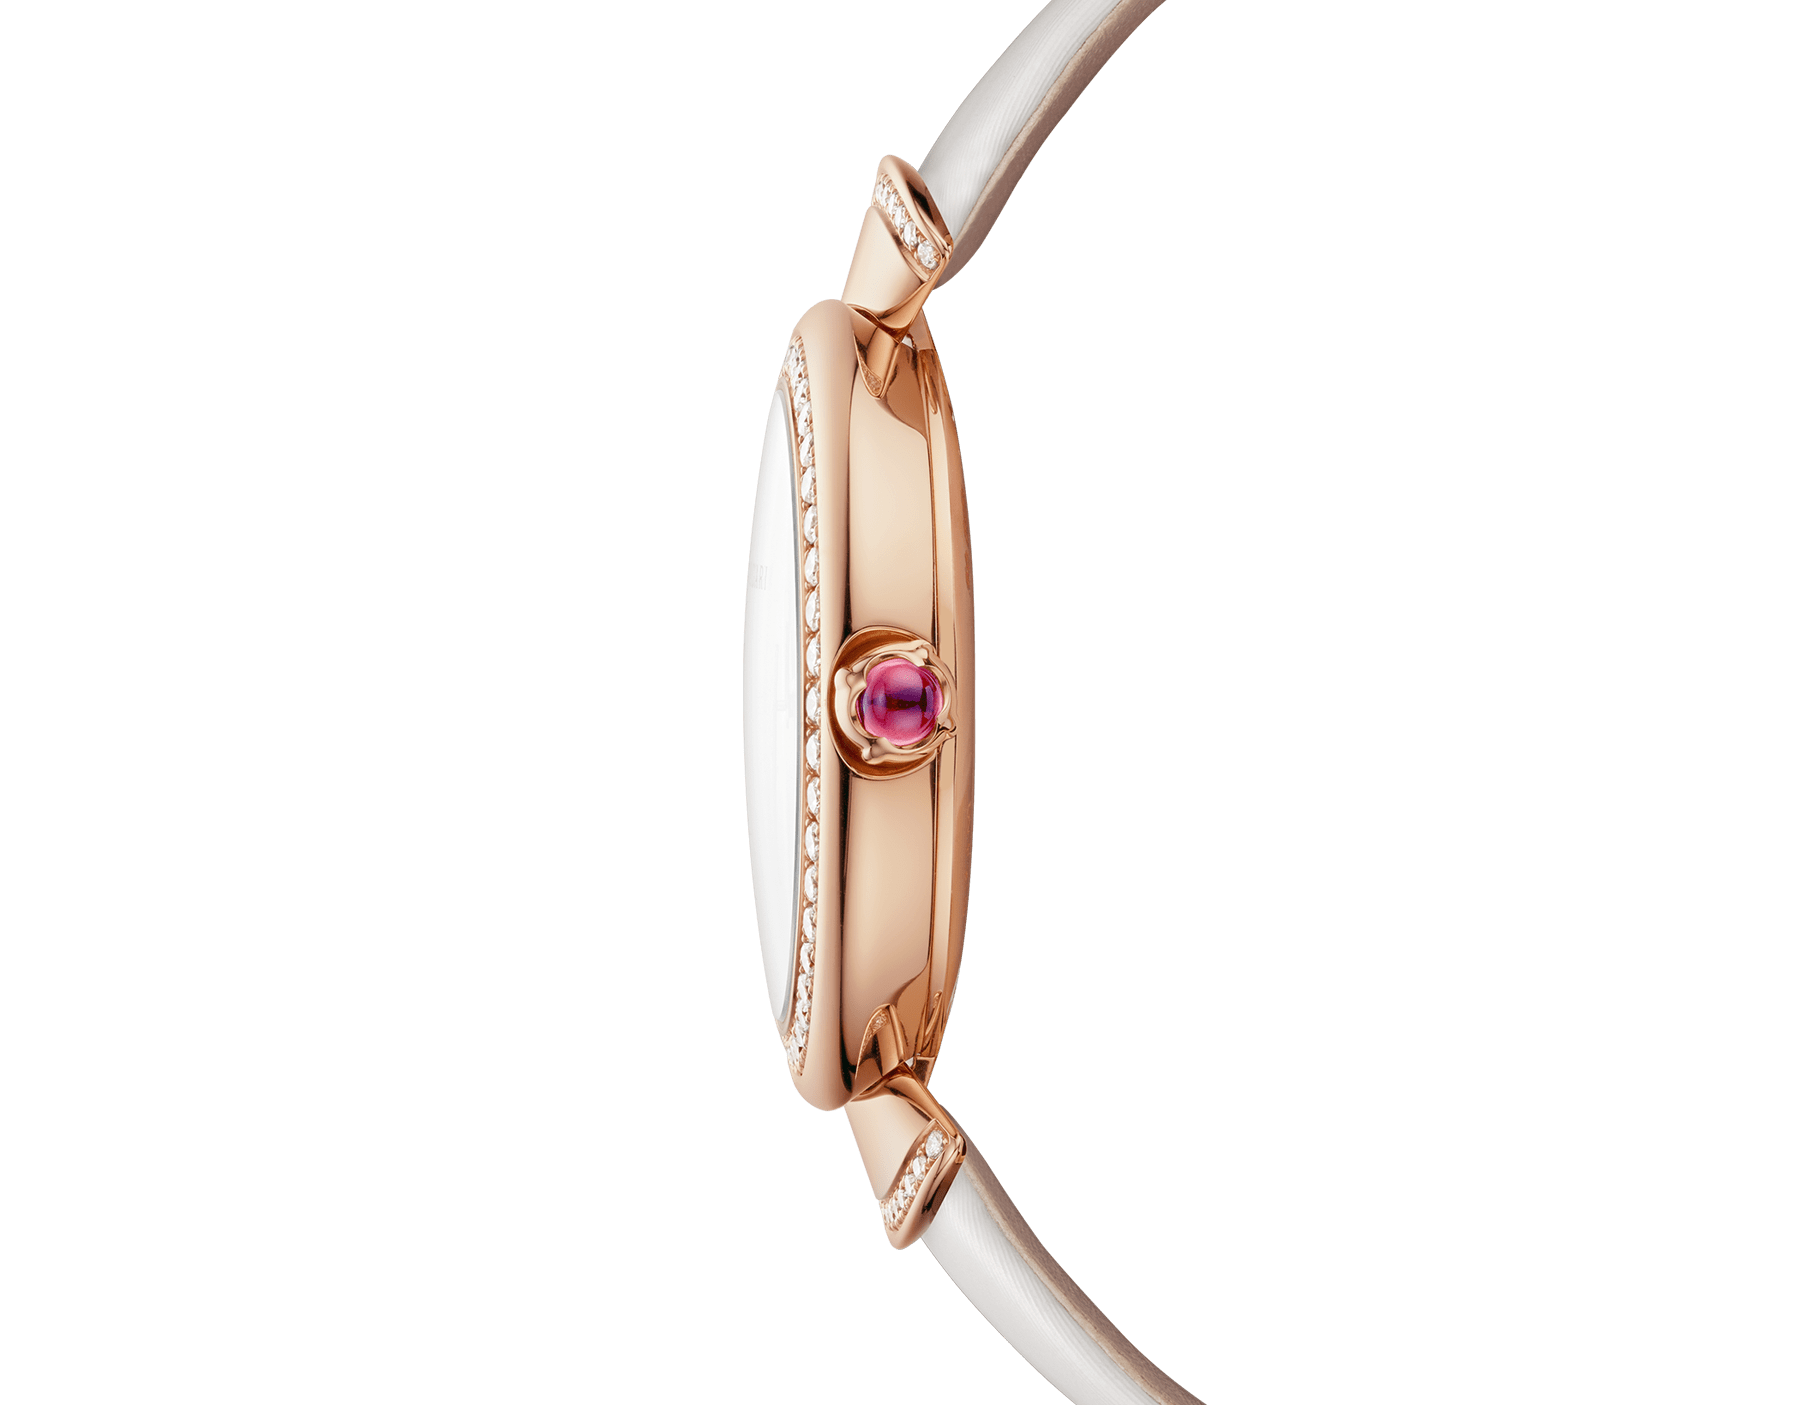 DIVAS' DREAM watch with 18 kt rose gold case set with brilliant-cut diamonds, acetate dial, diamond indexes and white satin bracelet 102575 image 3